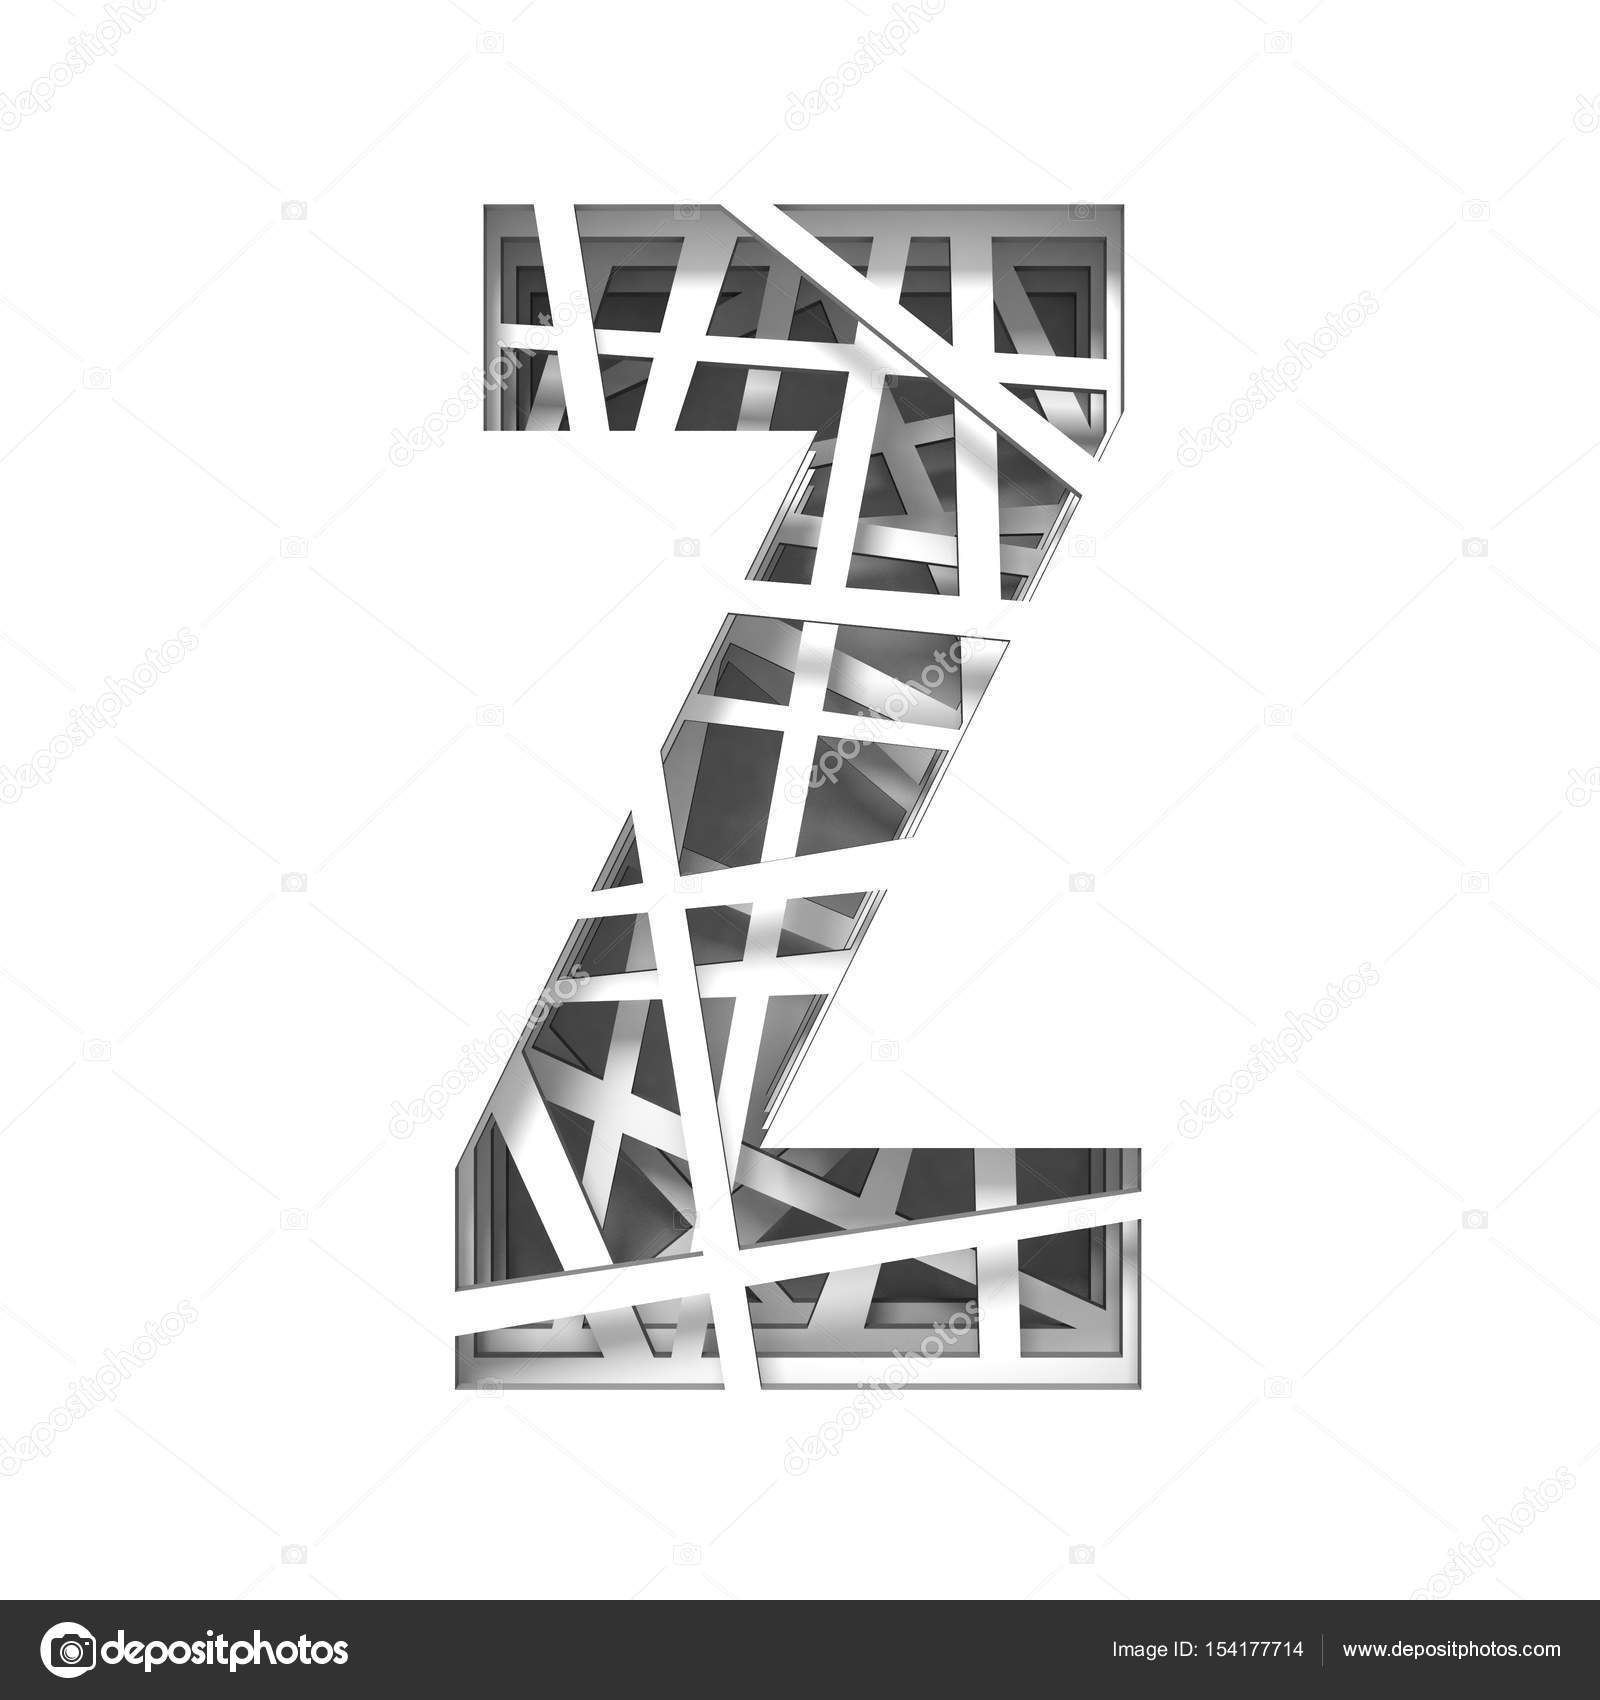 Paper cut out font letter z 3d stock photo djmilic 154177714 paper cut out font letter z 3d stock photo spiritdancerdesigns Image collections